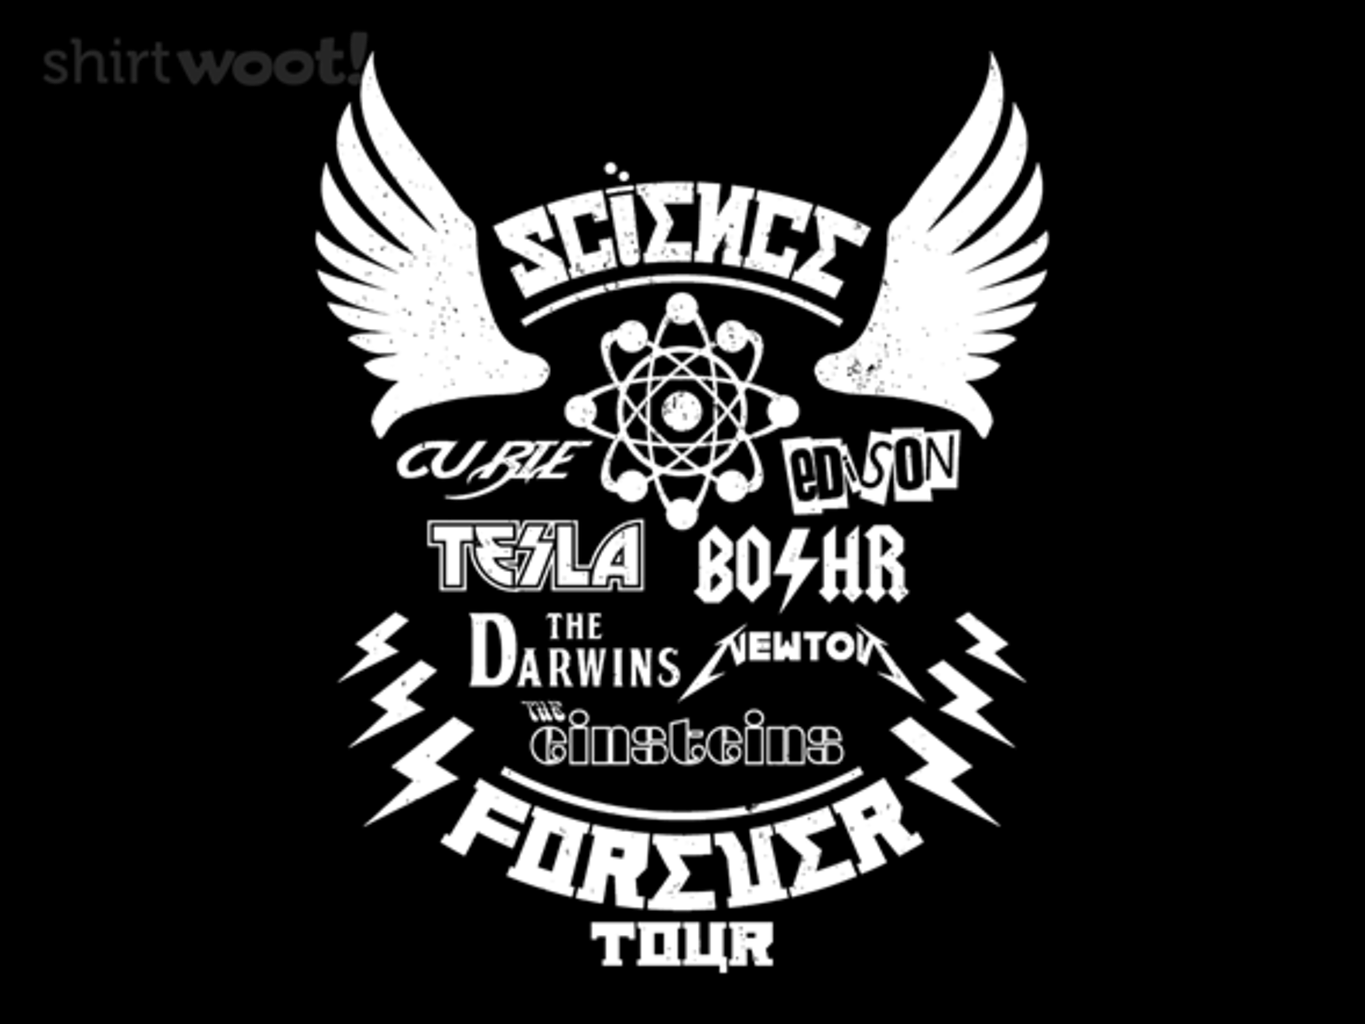 Woot!: Science Forever Tour